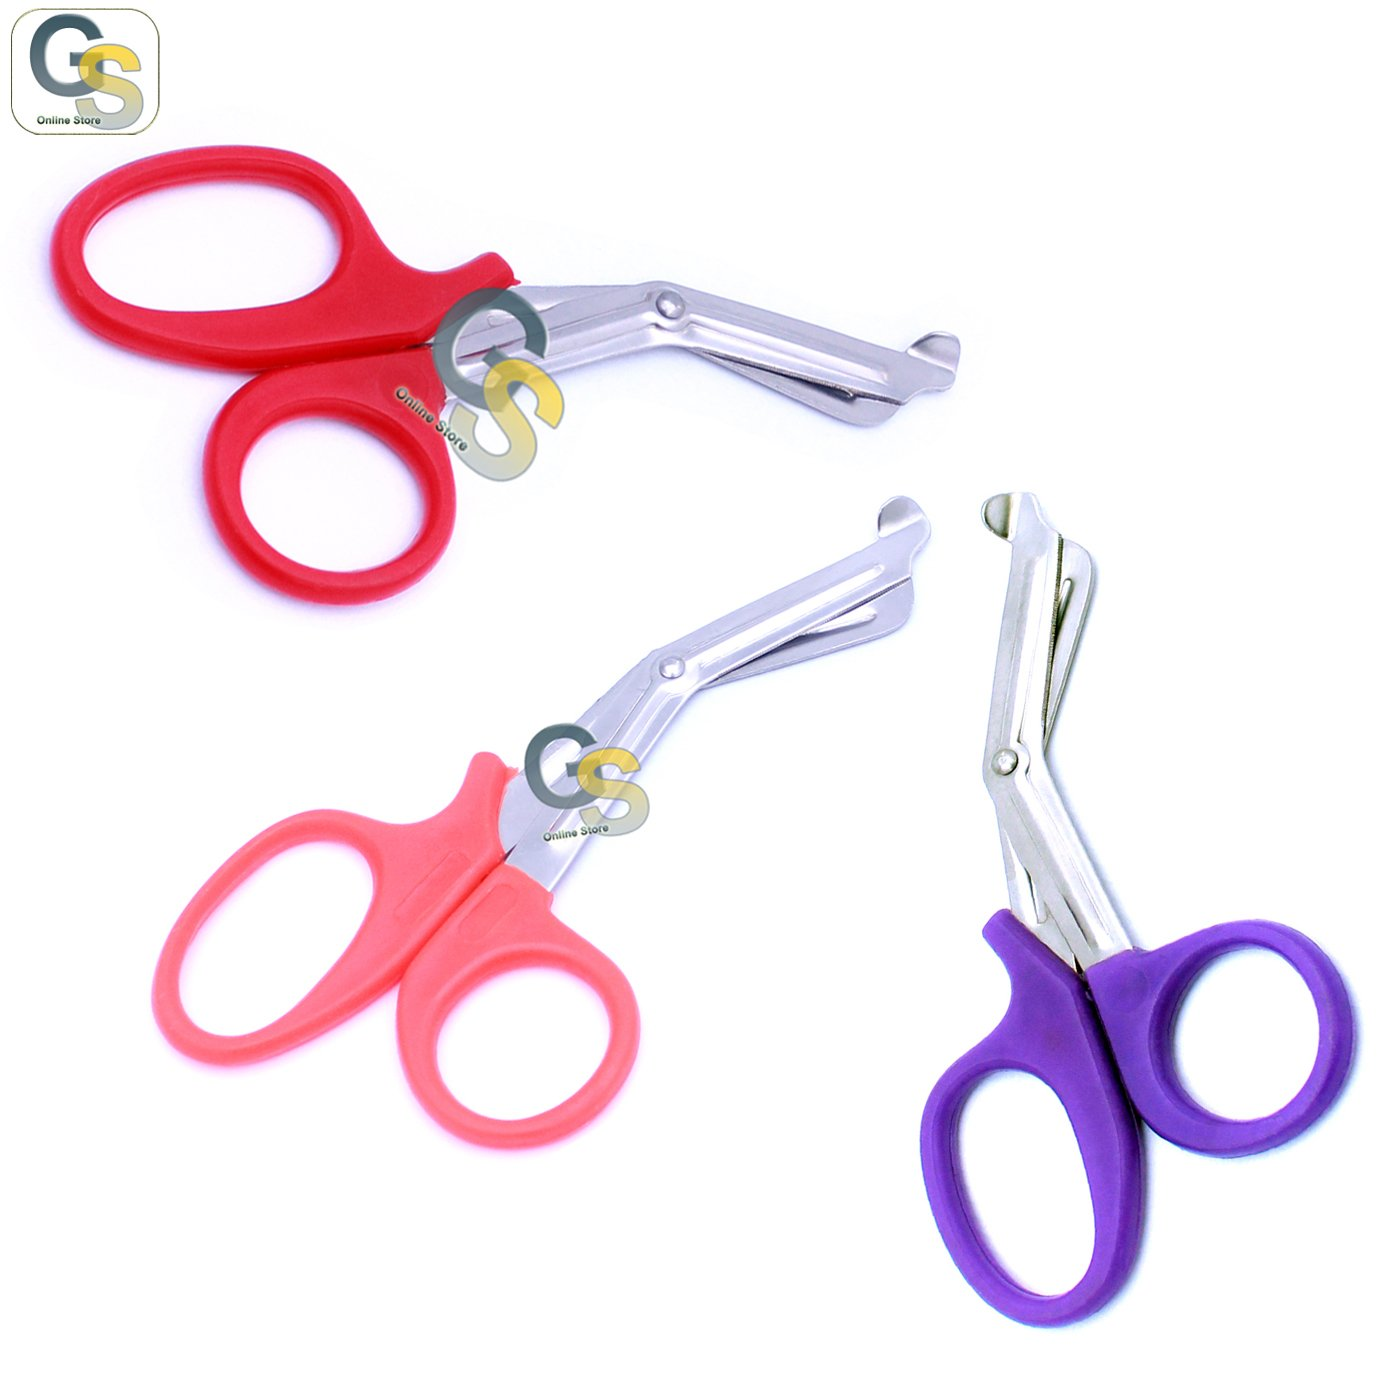 G.S 3 PCS (RED & PINK & PURPLE) PARAMEDIC UTILITY BANDAGE TRAUMA EMT EMS SHEARS SCISSORS 7.25 INCH STAINLESS STEEL